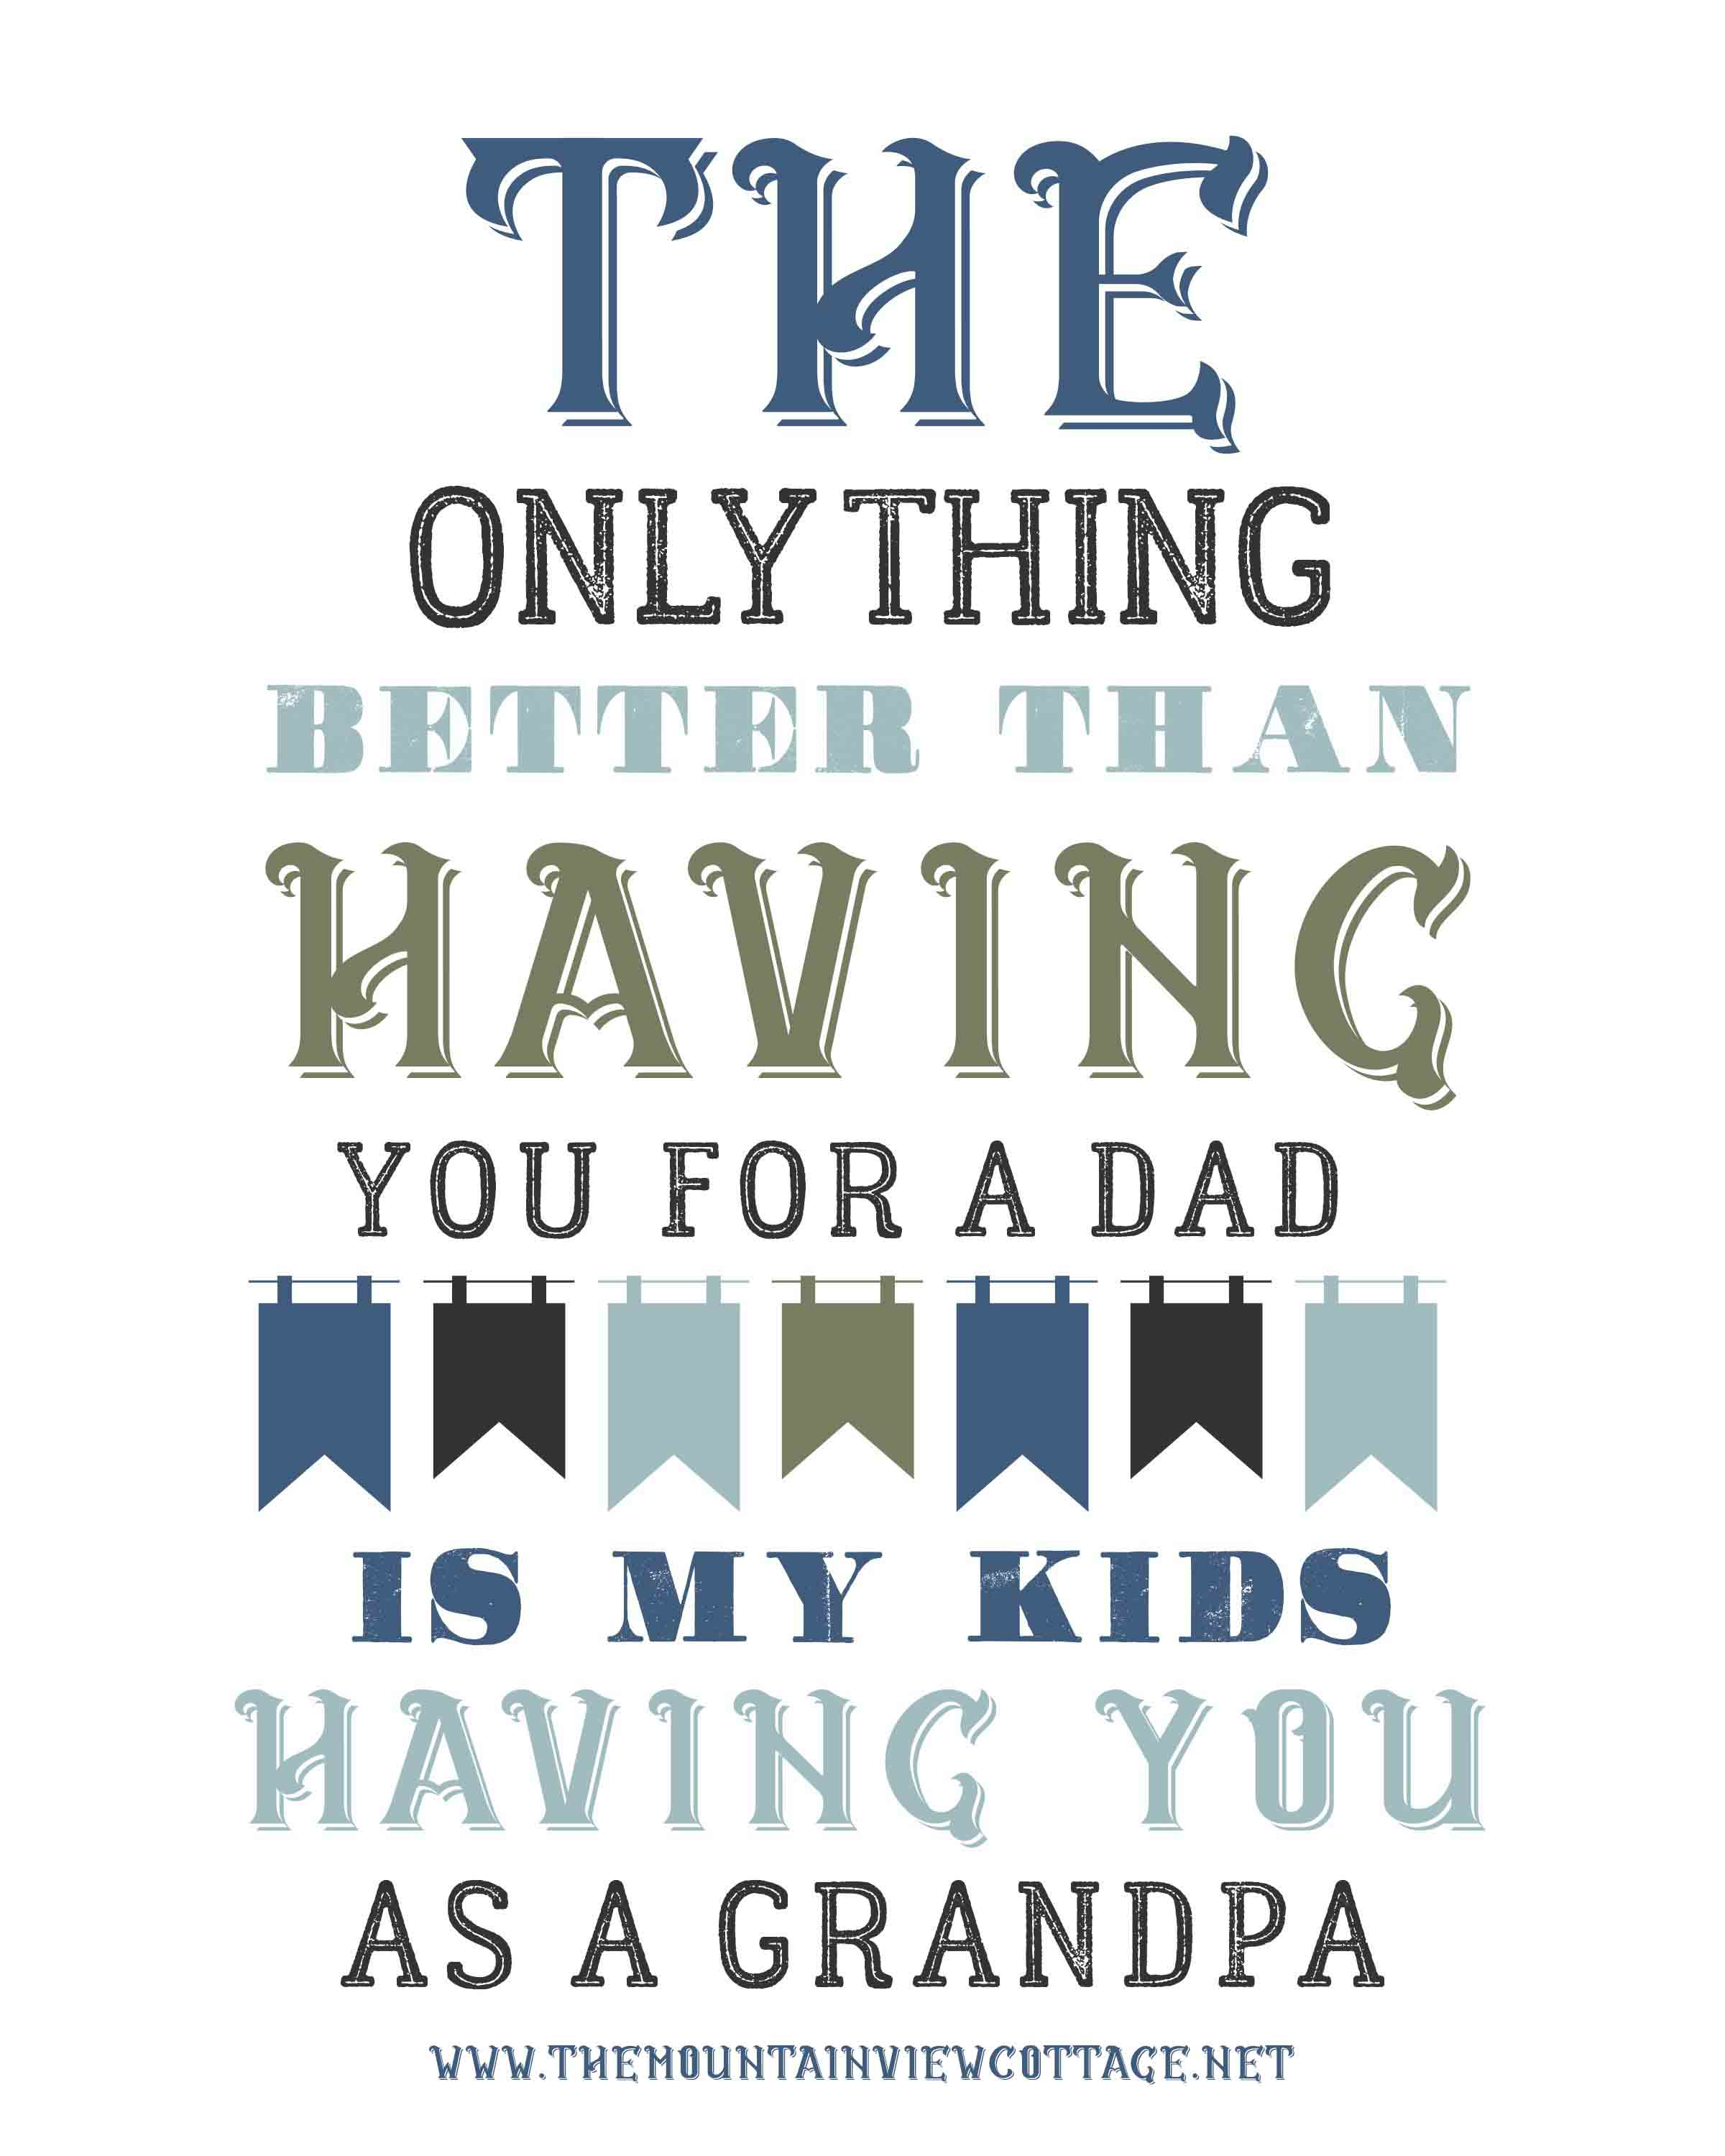 Best Dad Quotes 25 Dad Quotes to Inspire With Images   The Mountain View Cottage Best Dad Quotes